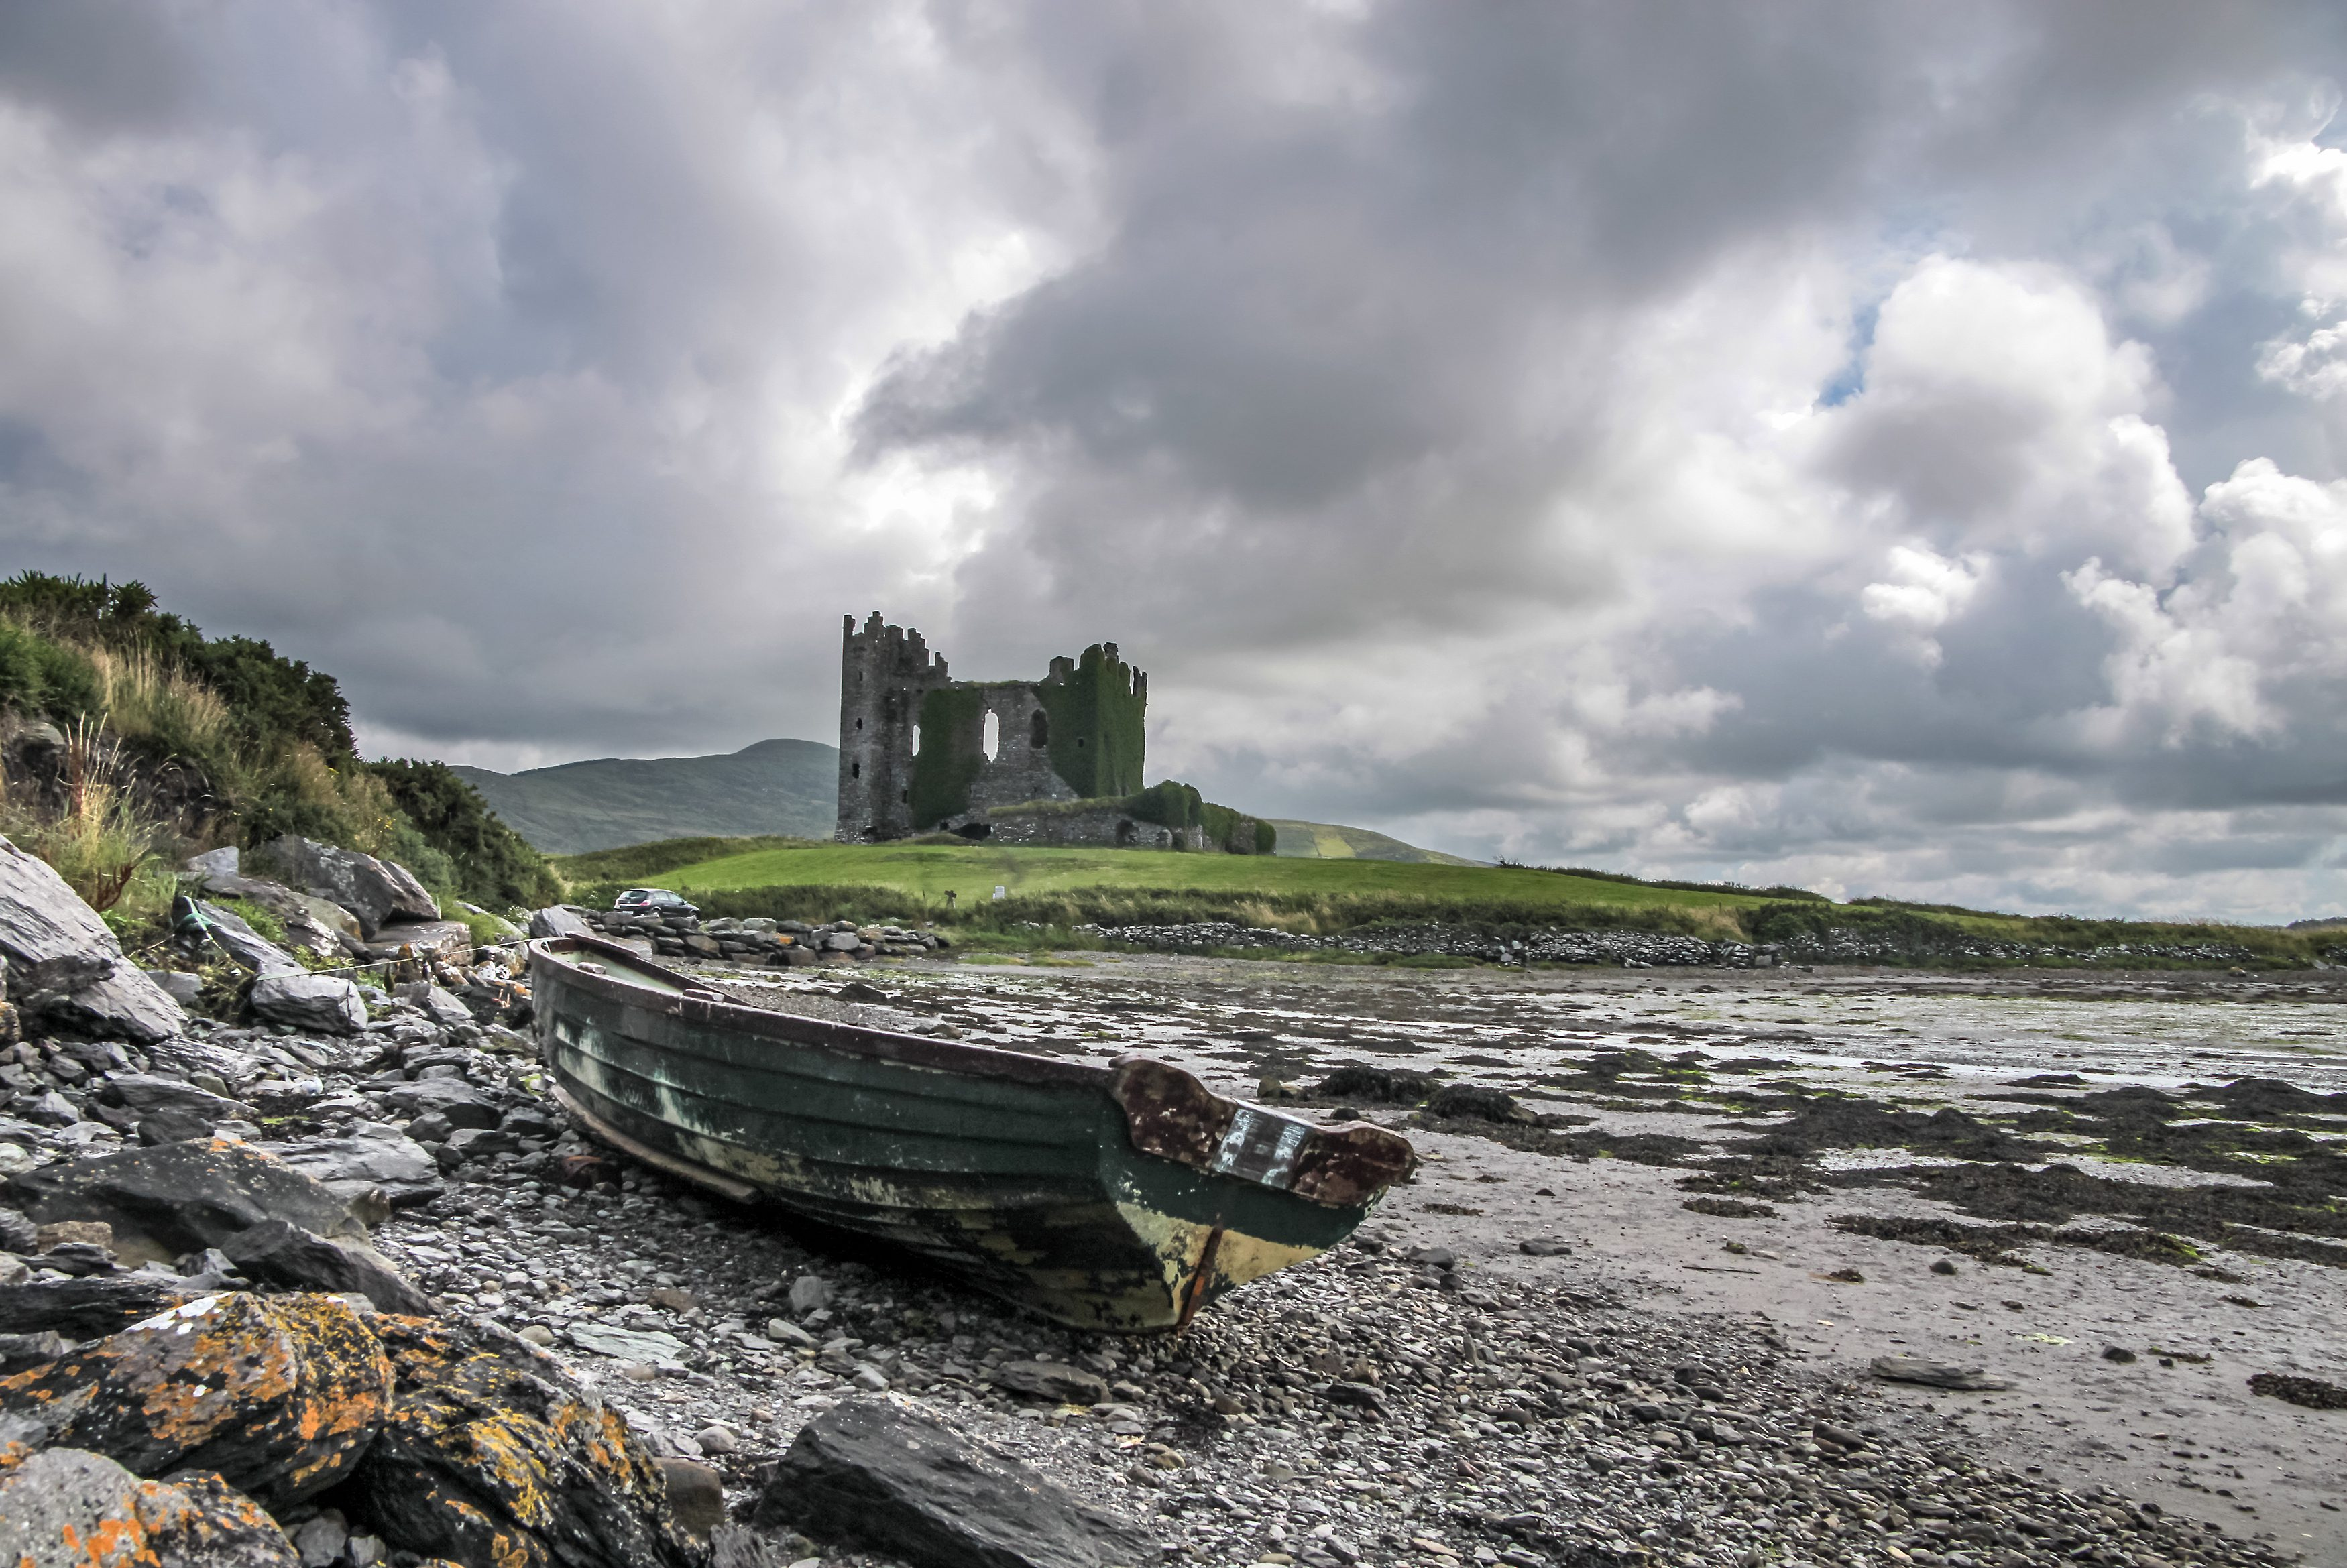 Ballycarbery Castle with old boat